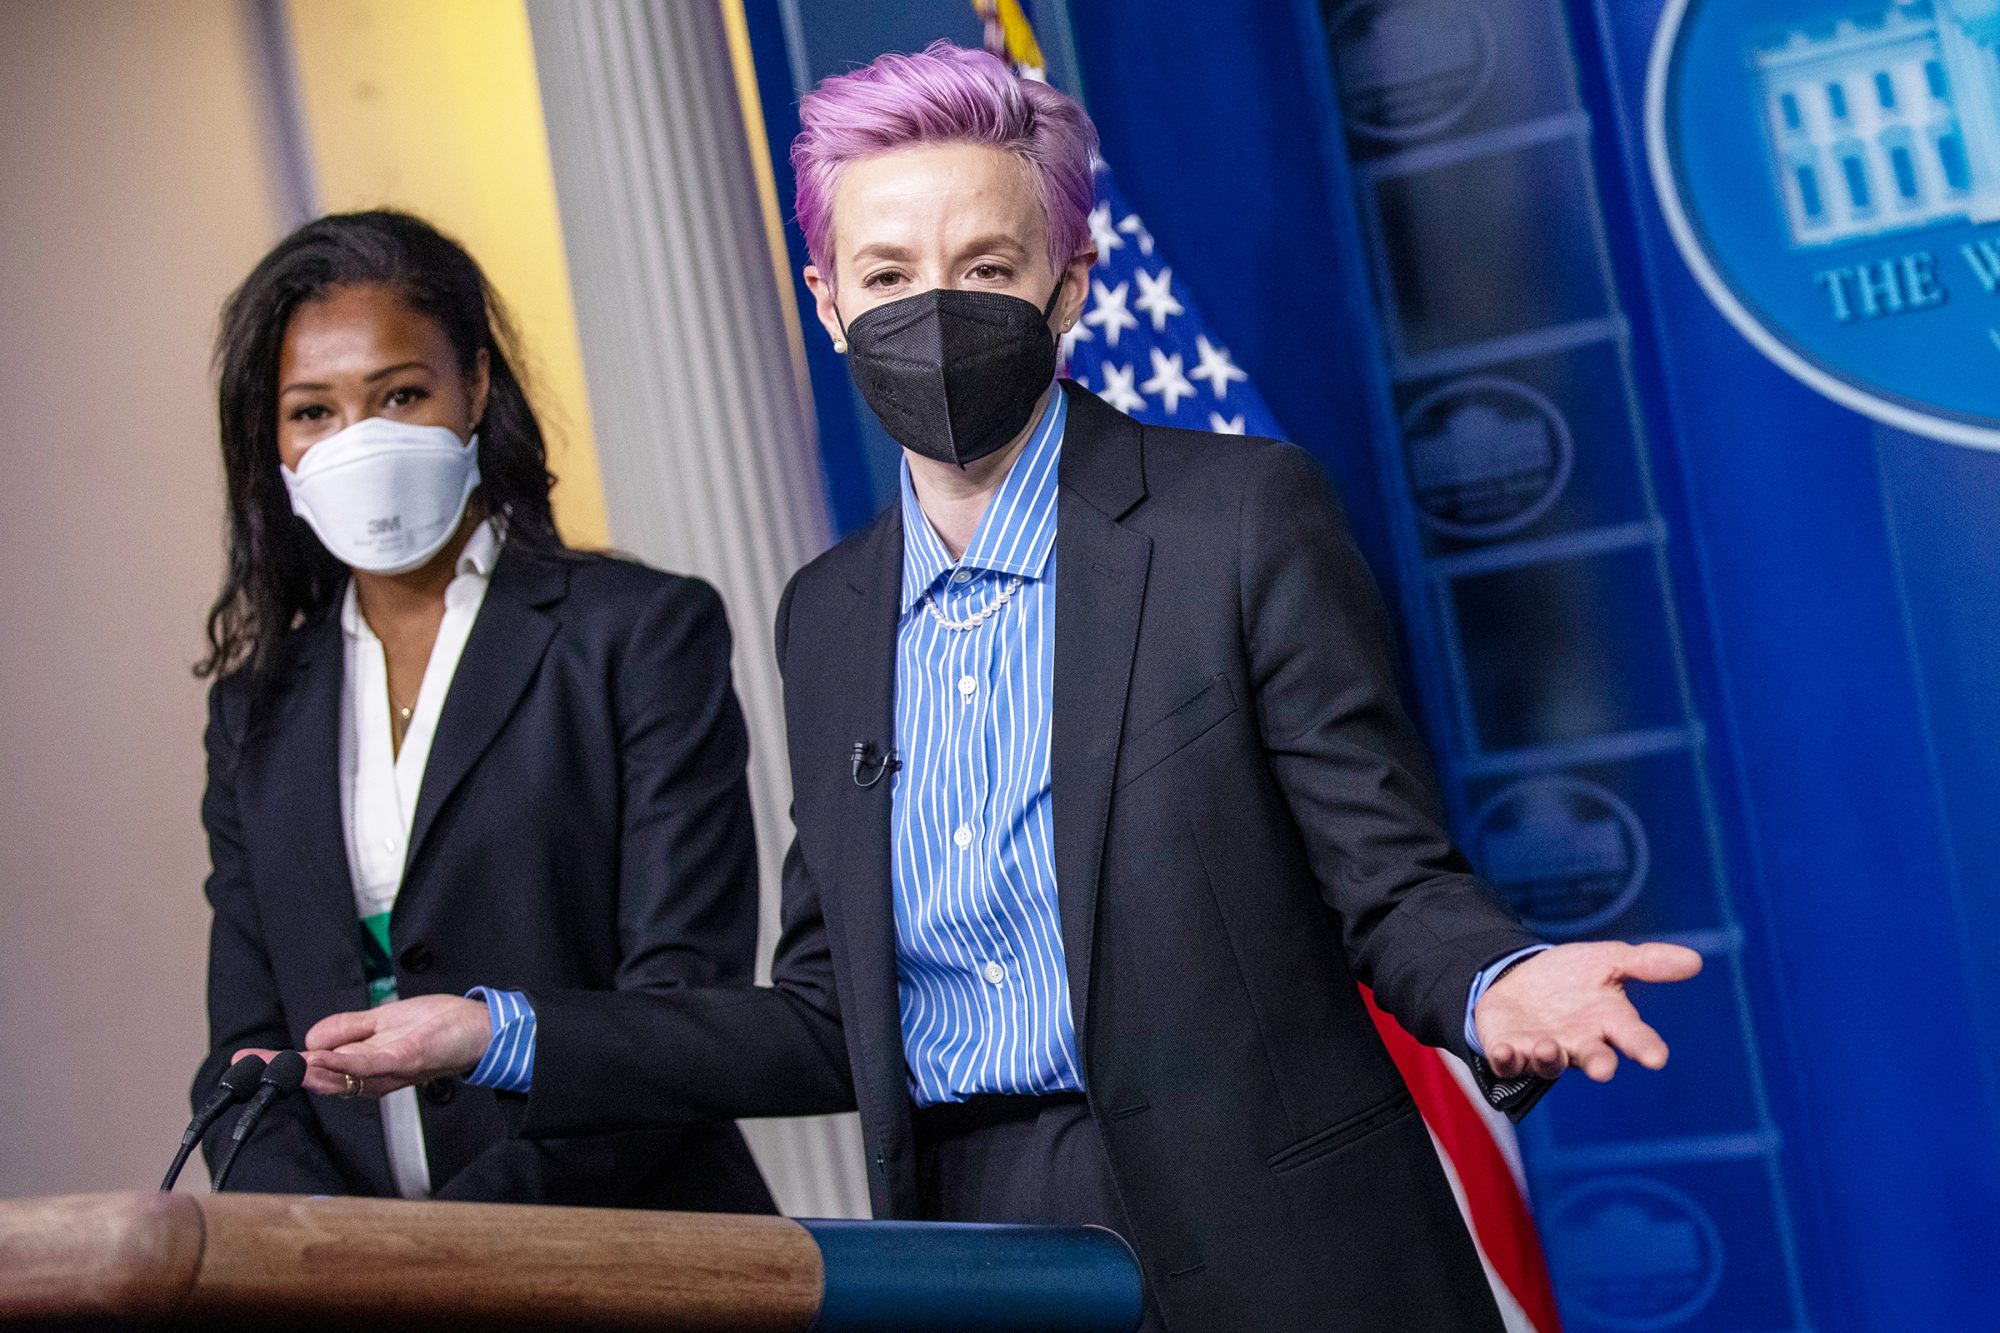 American professional soccer players Megan Rapinoe (R) and Margaret Purce (L) have their picture taken at the briefing room podium prior to the event to mark Equal Pay Day in the State Dining Room of the White House in Washington, DC, USA, 24 March 2021